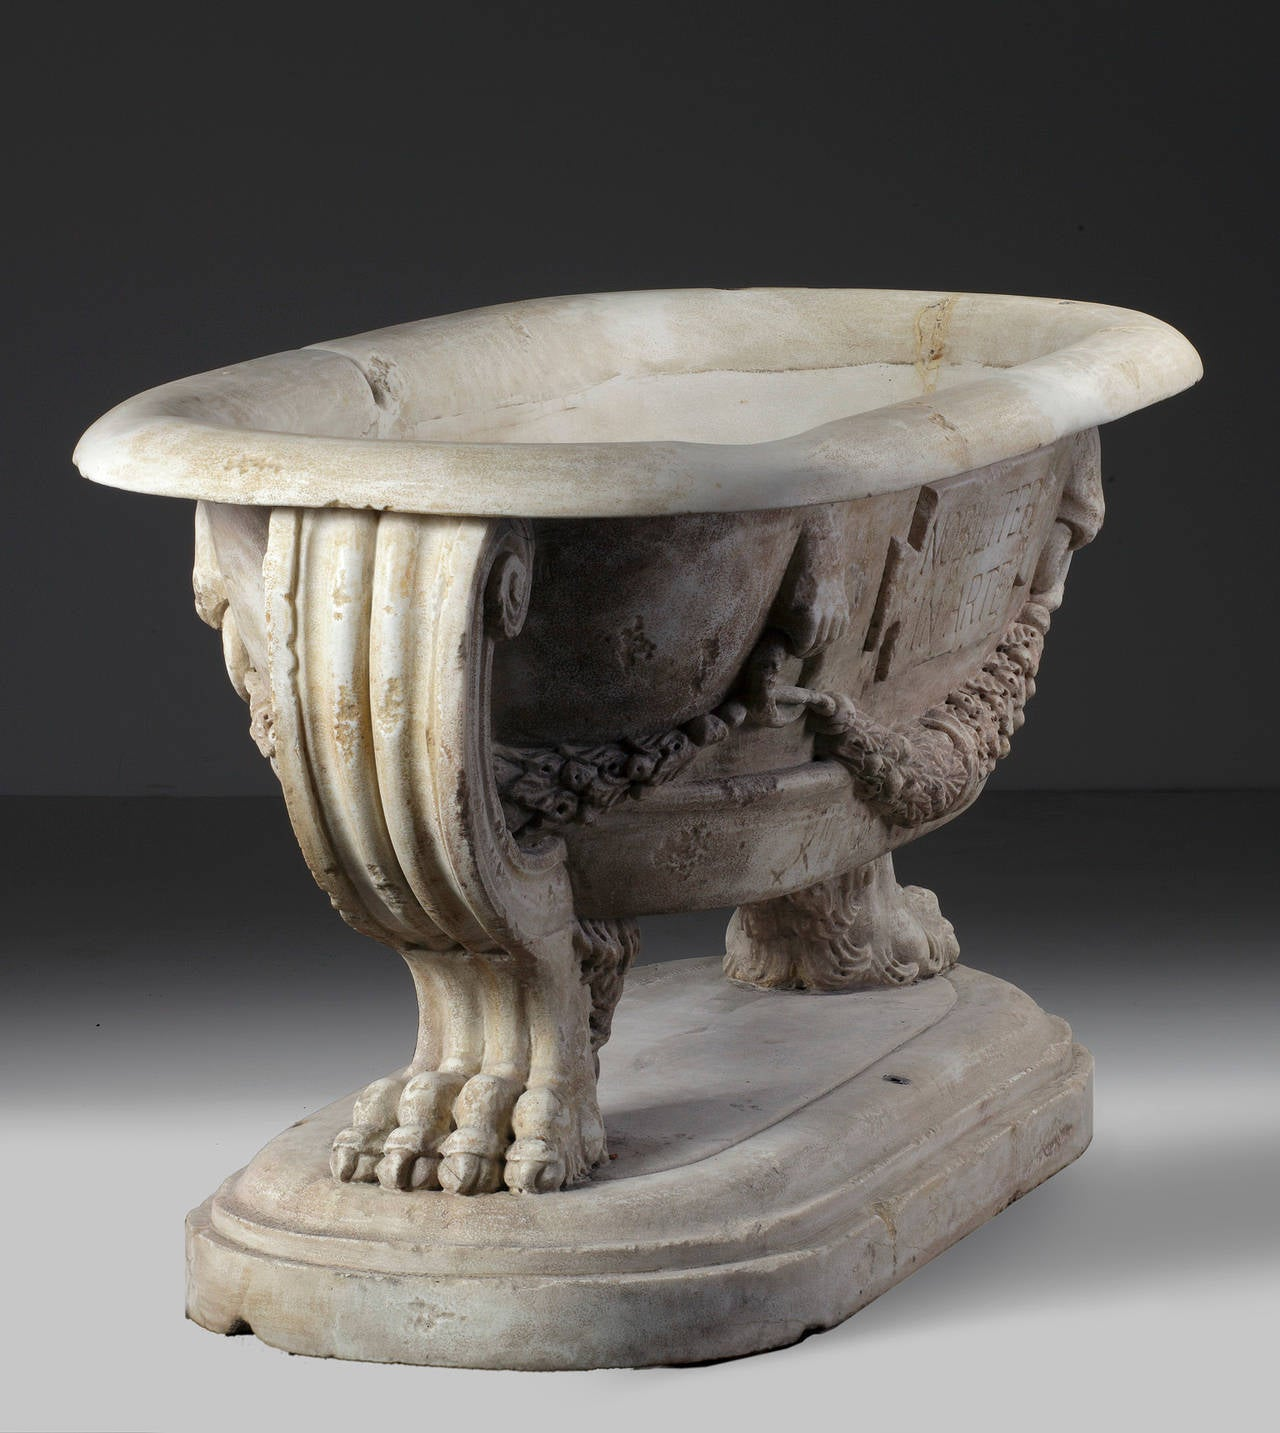 Classical Roman Sculpted Marble Planter in the Manner of a Roman Sarcophagus